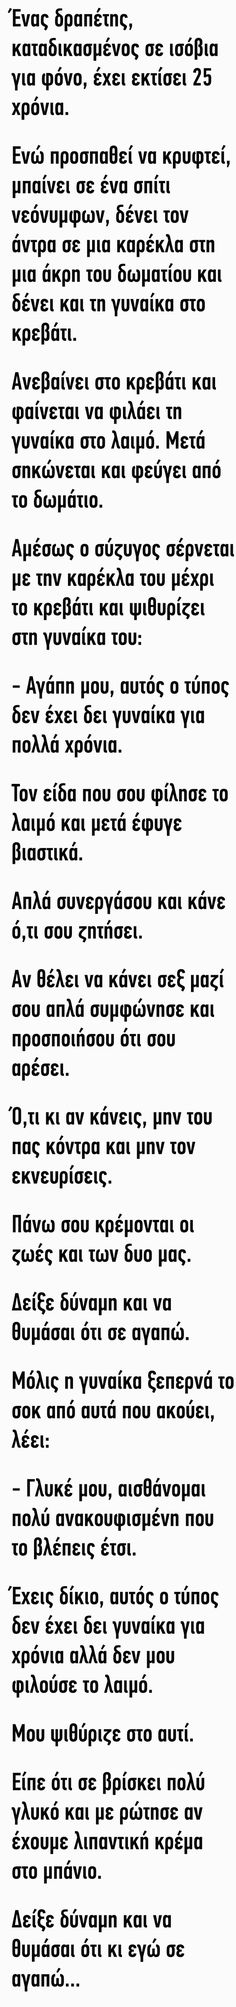 Πηγή Funny Images, Funny Pictures, Are You Serious, Funny Greek, Greek Quotes, Wedding Humor, Funny Moments, Laugh Out Loud, Laughter